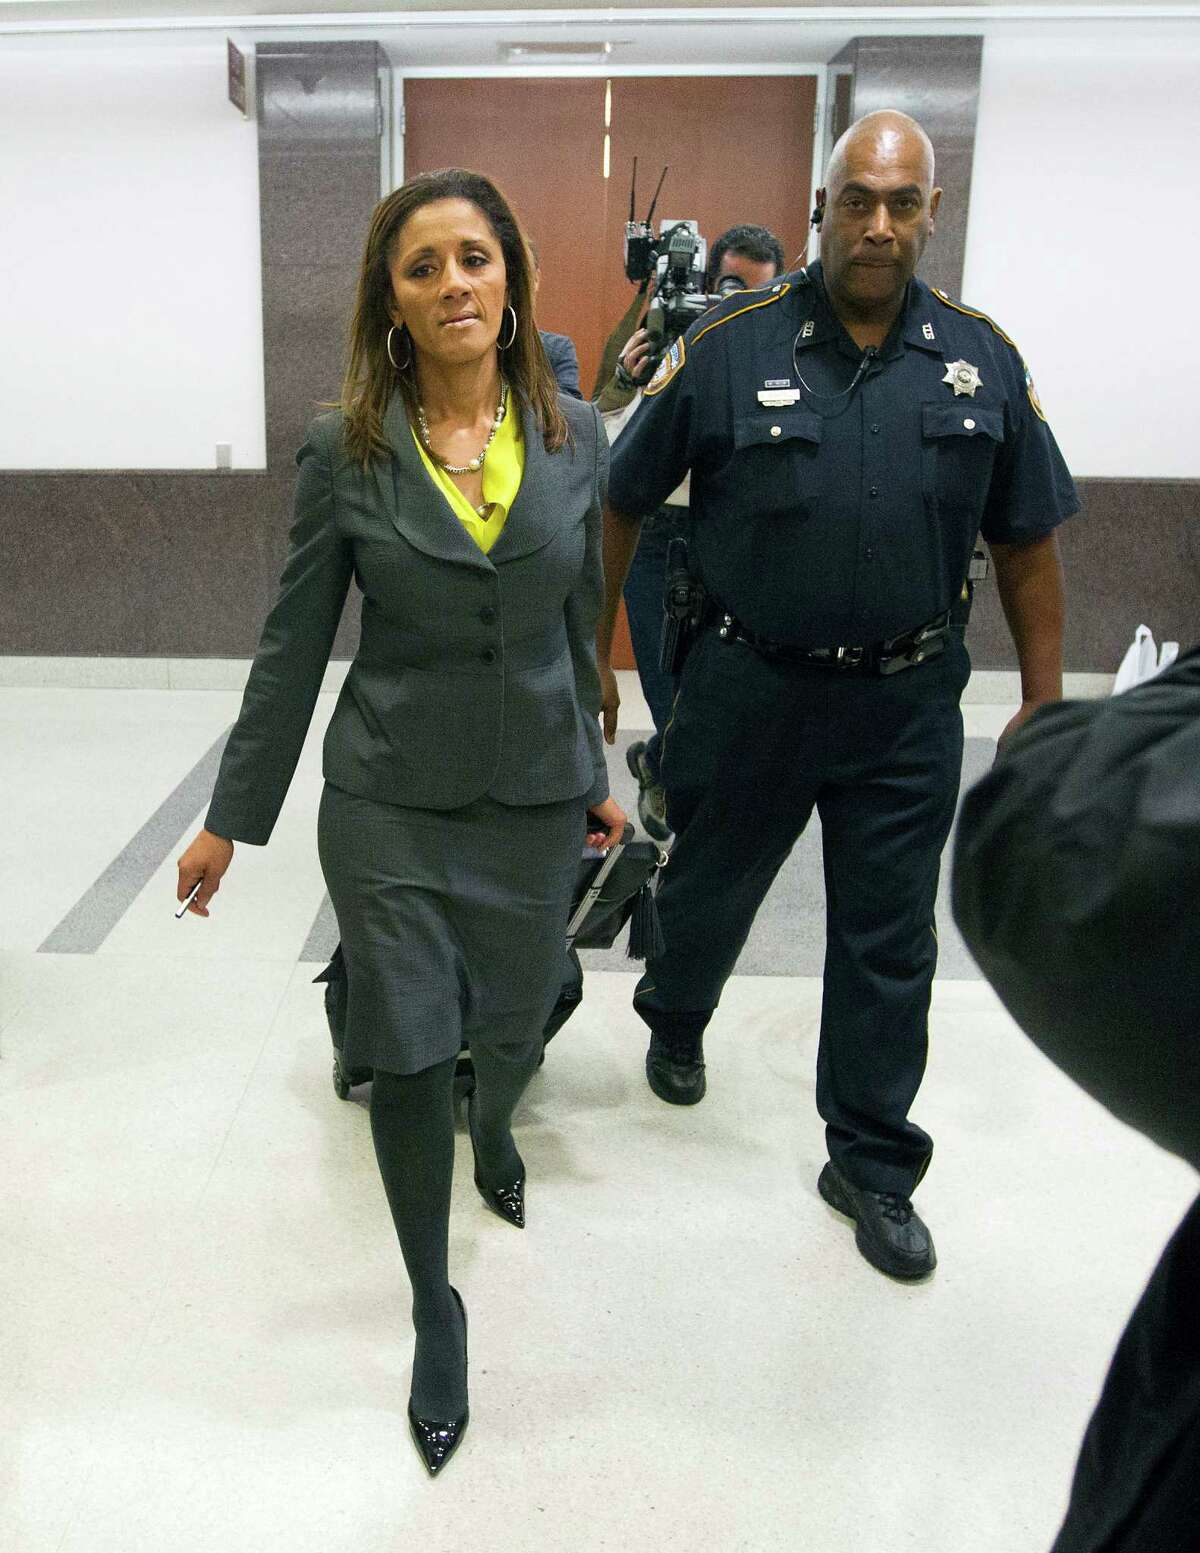 Tammy Adams leaves court after appearing on behalf of a teen accused of abandoning her baby.